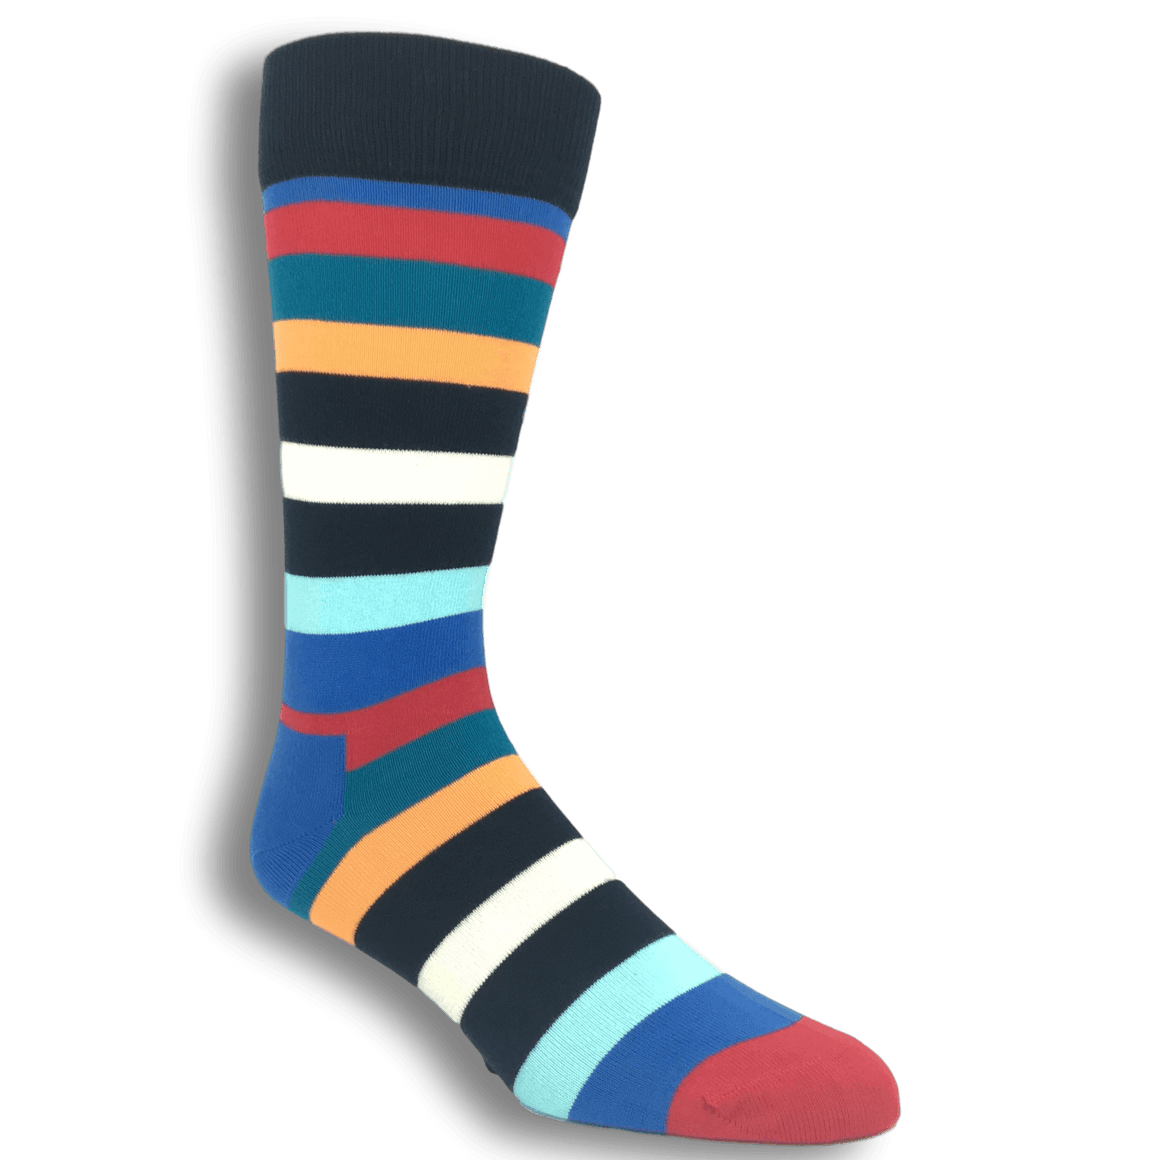 Blue, Red, and Orange Stripe Socks by Happy Socks - The Sock Spot